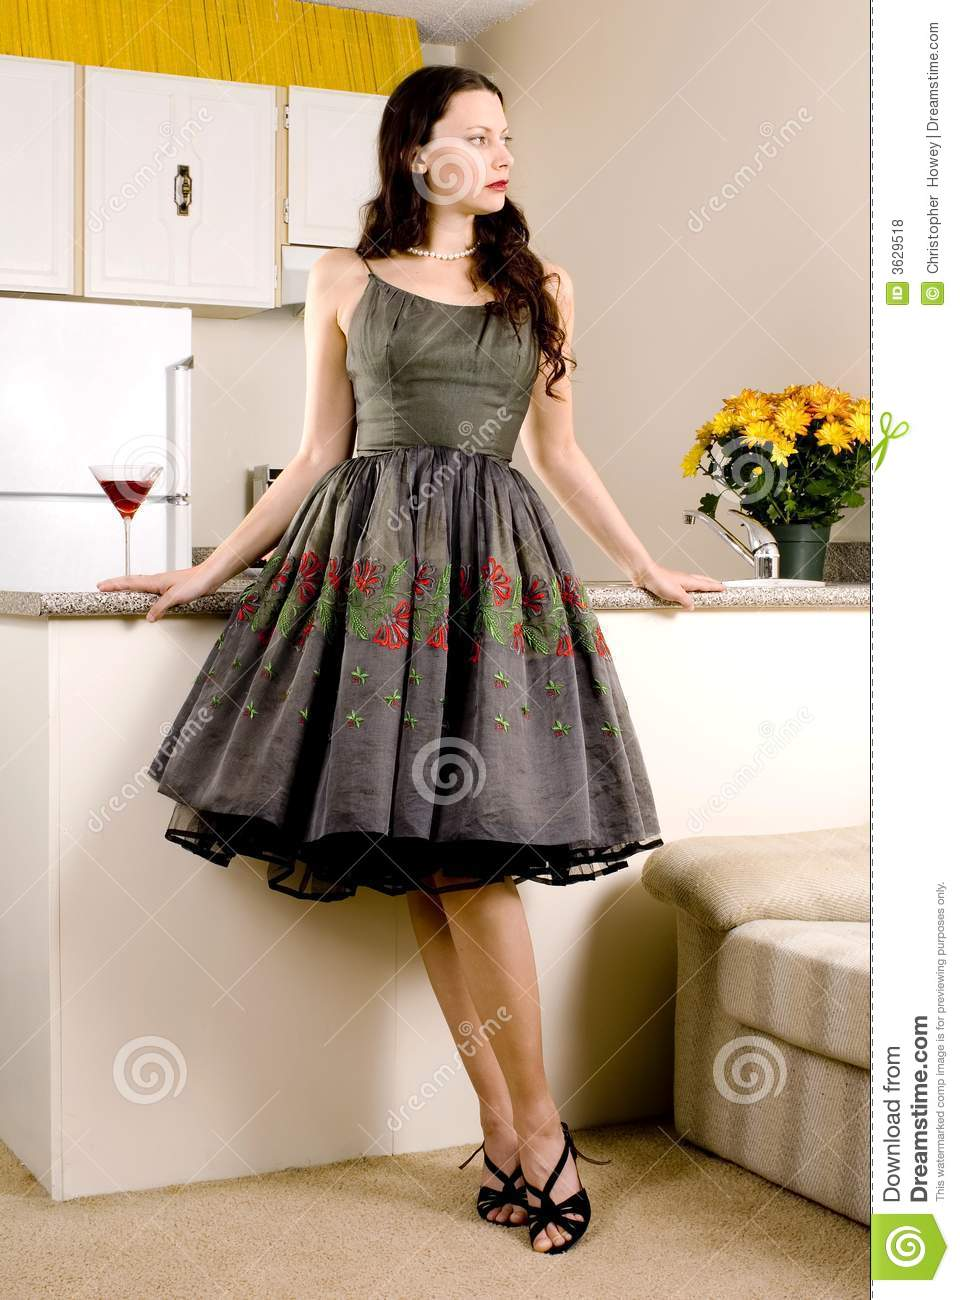 Retro housewife stock photo image of martini people for Classic housewife